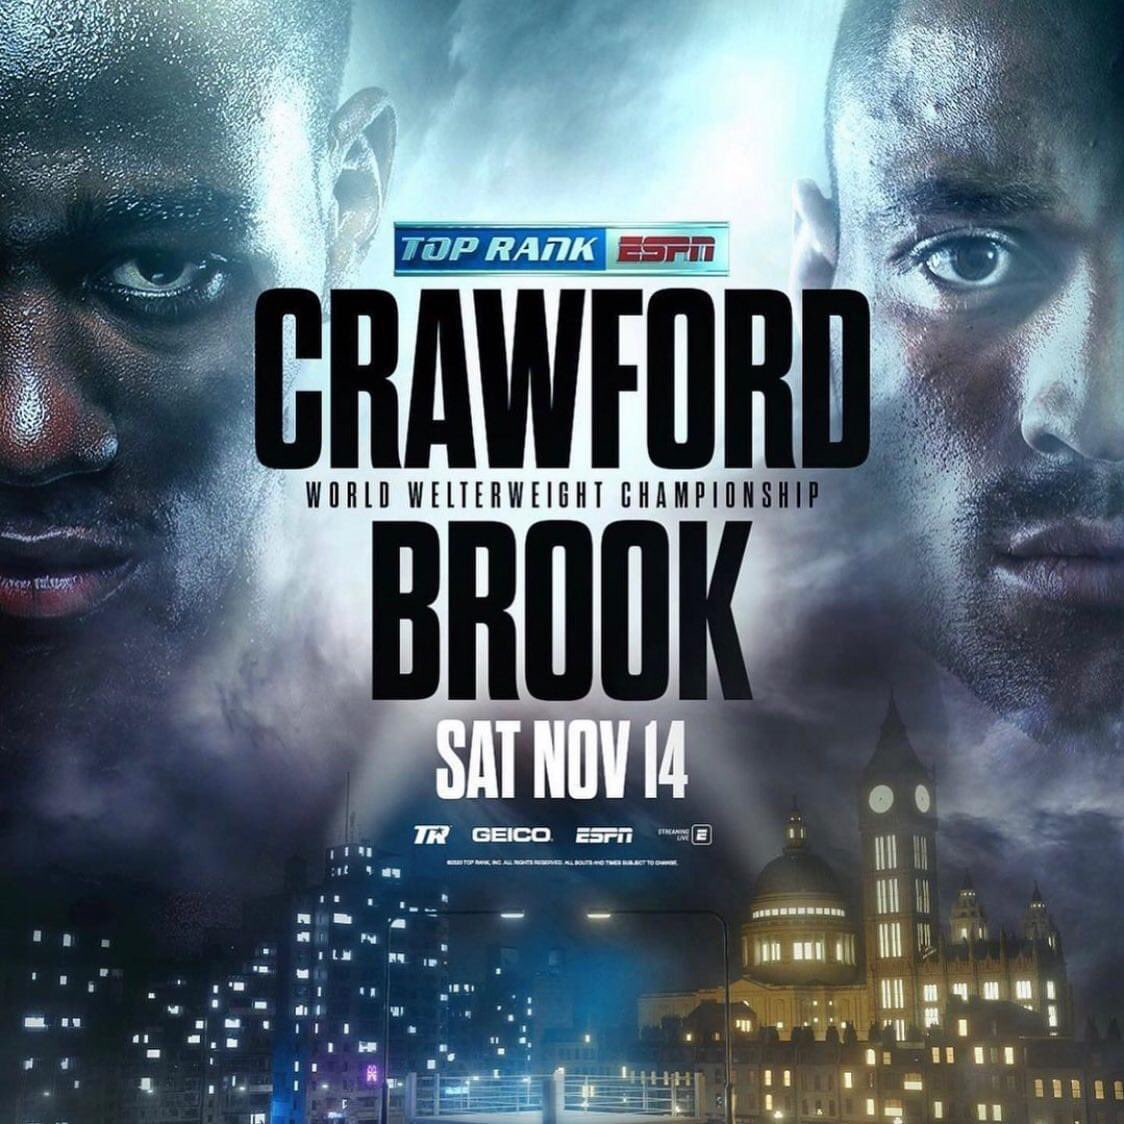 😮 FIGHT ANNOUNCEMENT!  🥊 Crawford v Brook 🗓 November 14  🗺 Vegas  . . #crawfordbrook #announcement #ritsonvasquez #lomalopez #boxing #matchroomboxing #welterweight #worldchampion #boks https://t.co/8nYsZPoPHD